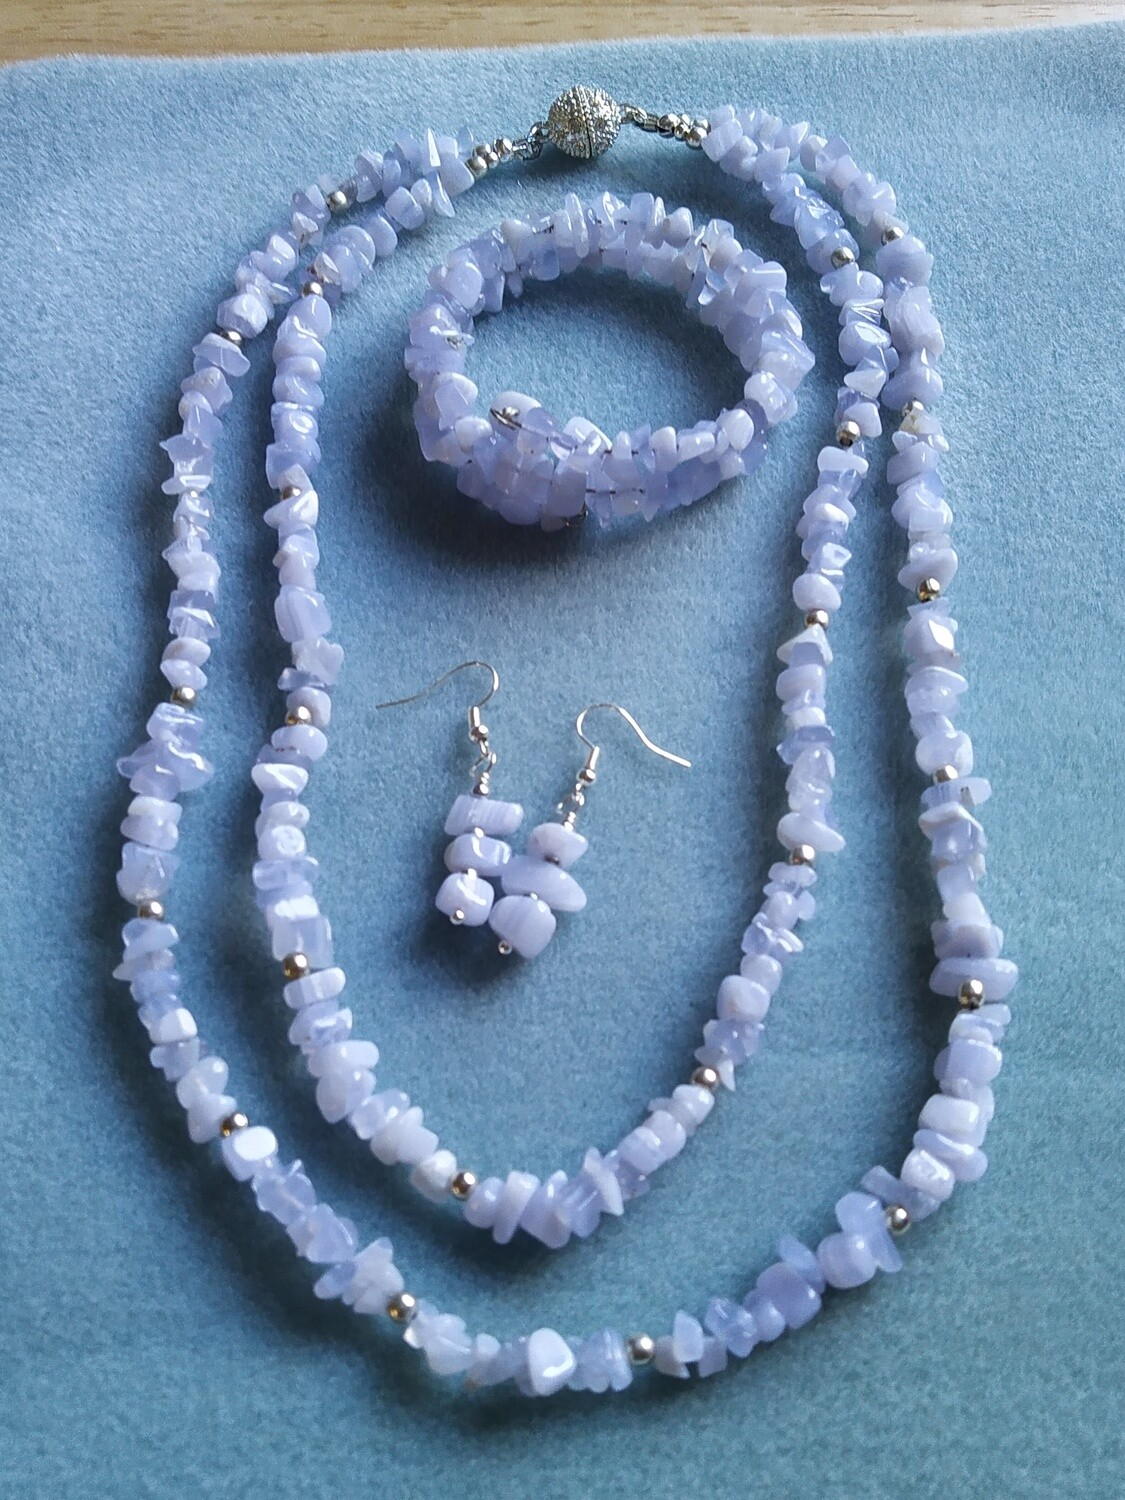 Blue Lace Agate Nuggets double strand necklace